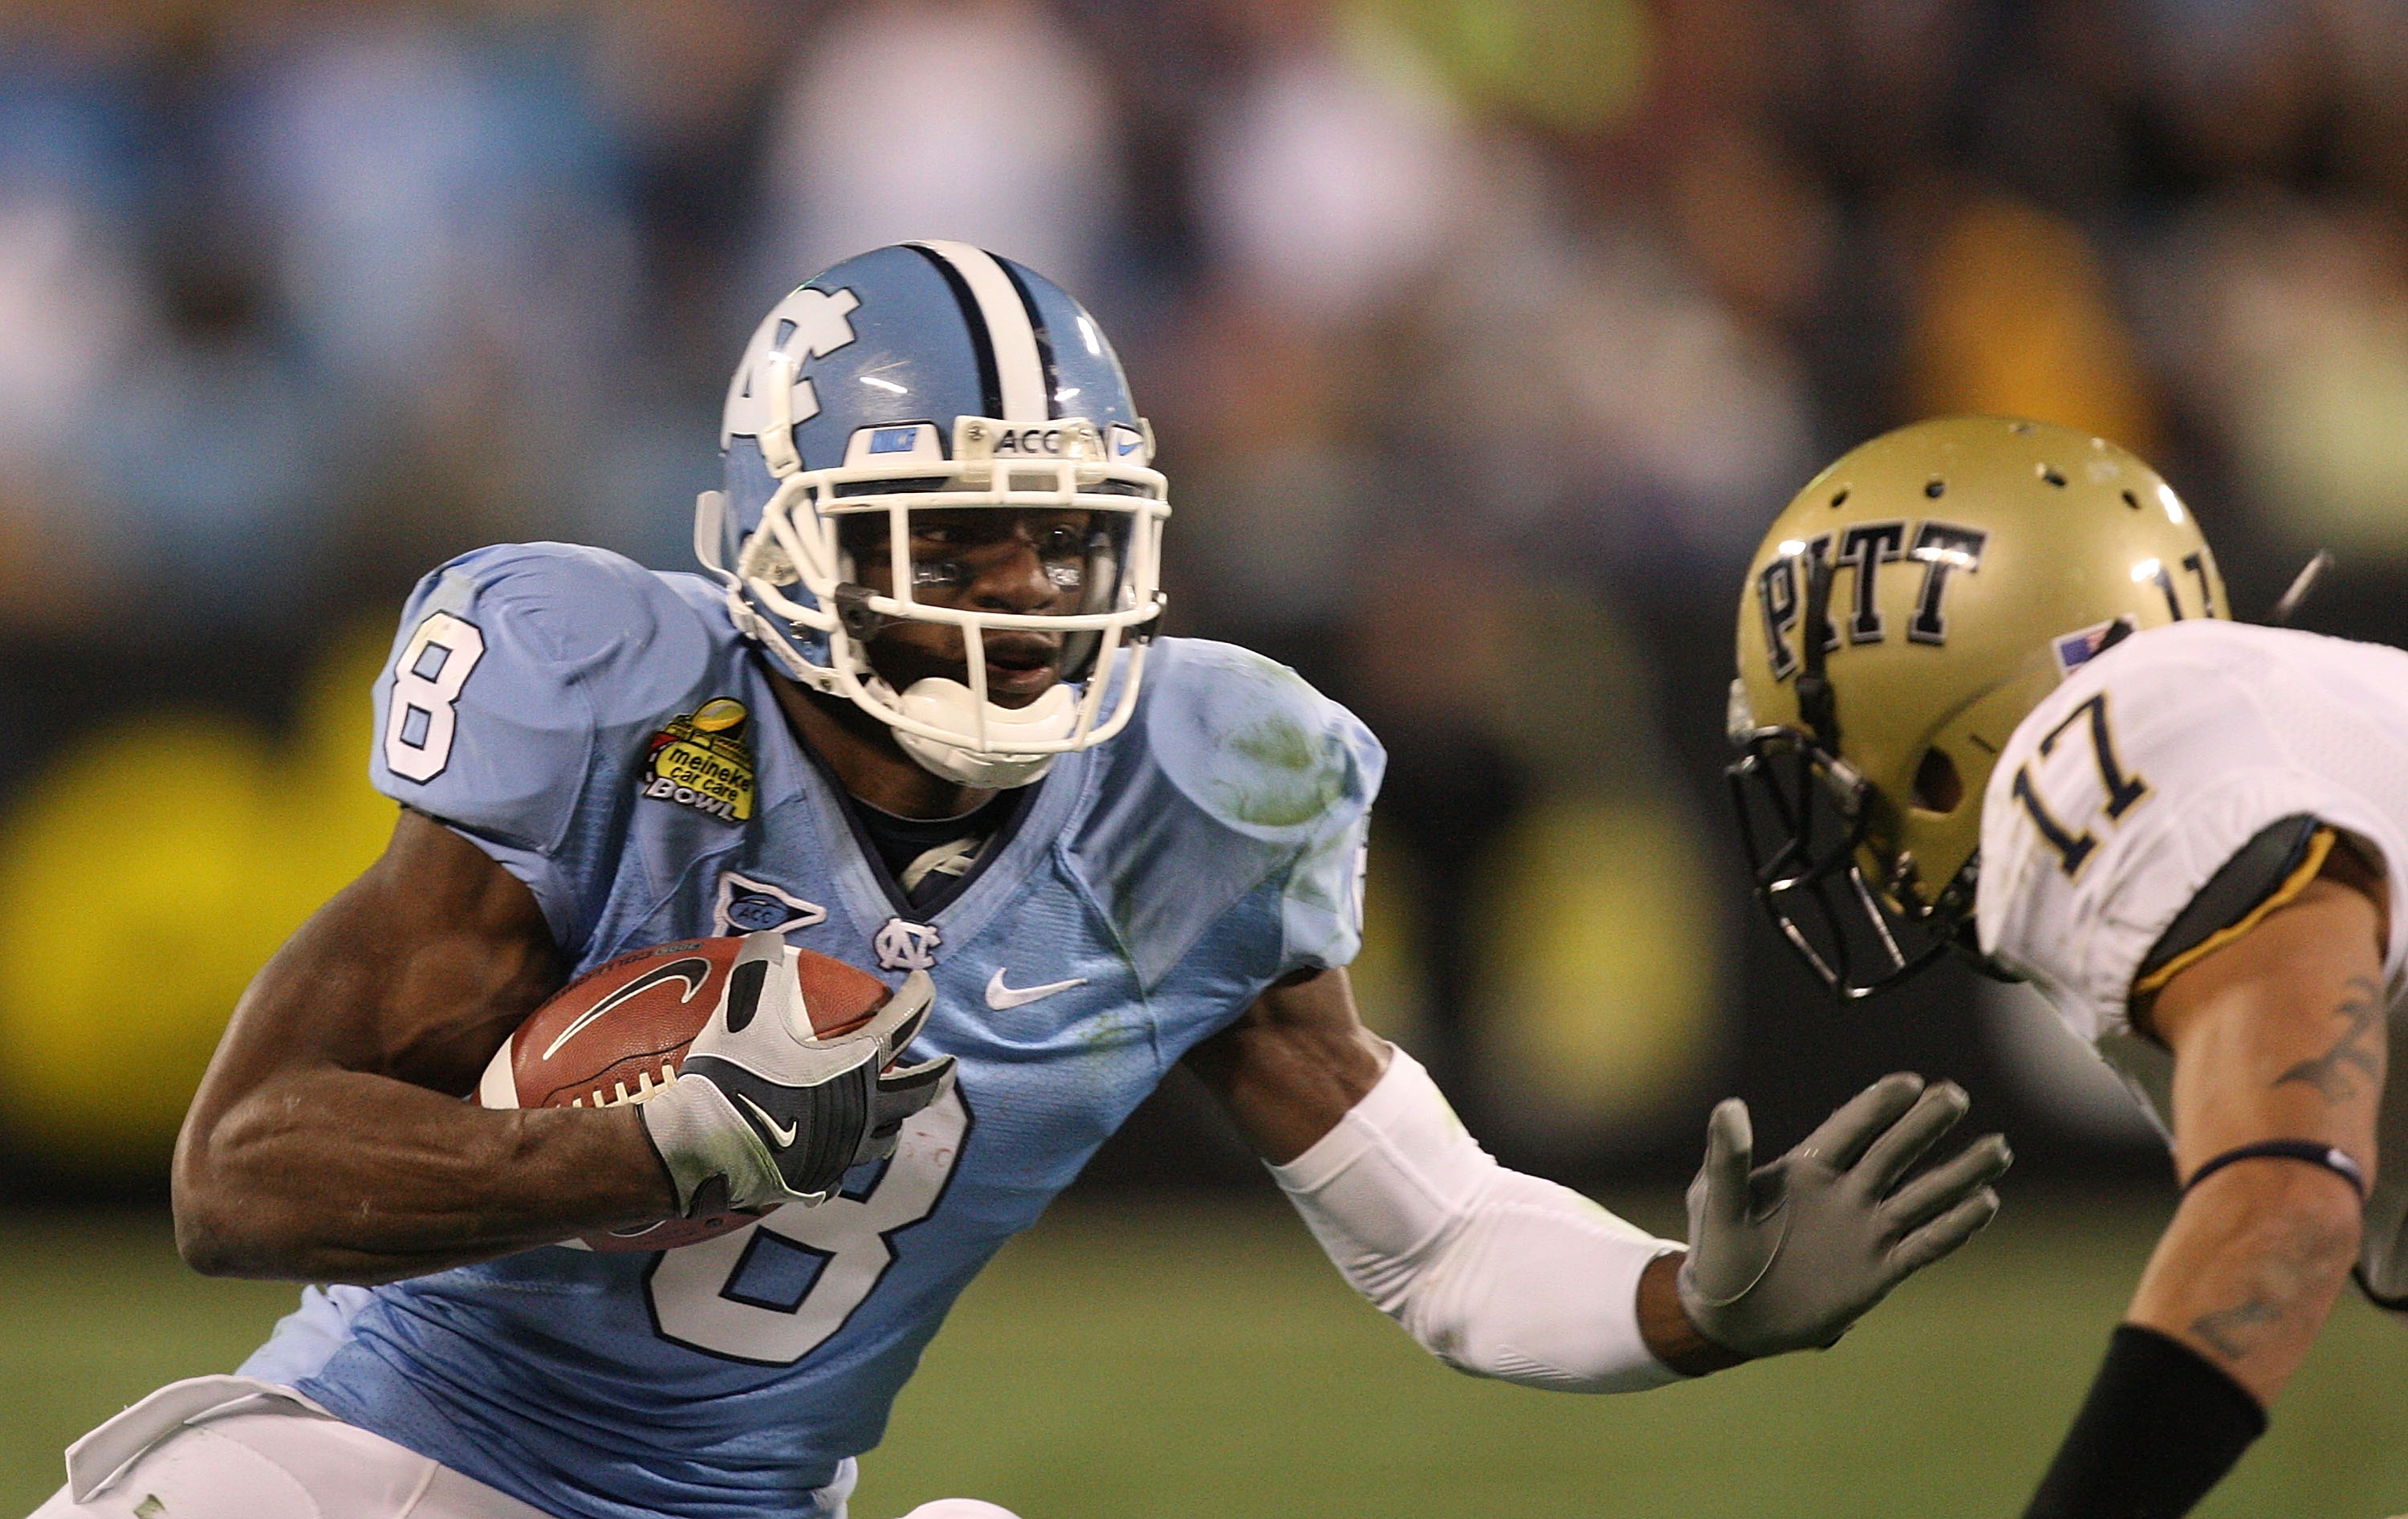 CHARLOTTE, NC - DECEMBER 26:  Aaron Berry #17 of the Pittsburgh Panthers tackles Greg Little #8 of the North Carolina Tar Heels during their game on December 26, 2009 in Charlotte, North Carolina.  (Photo by Streeter Lecka/Getty Images)